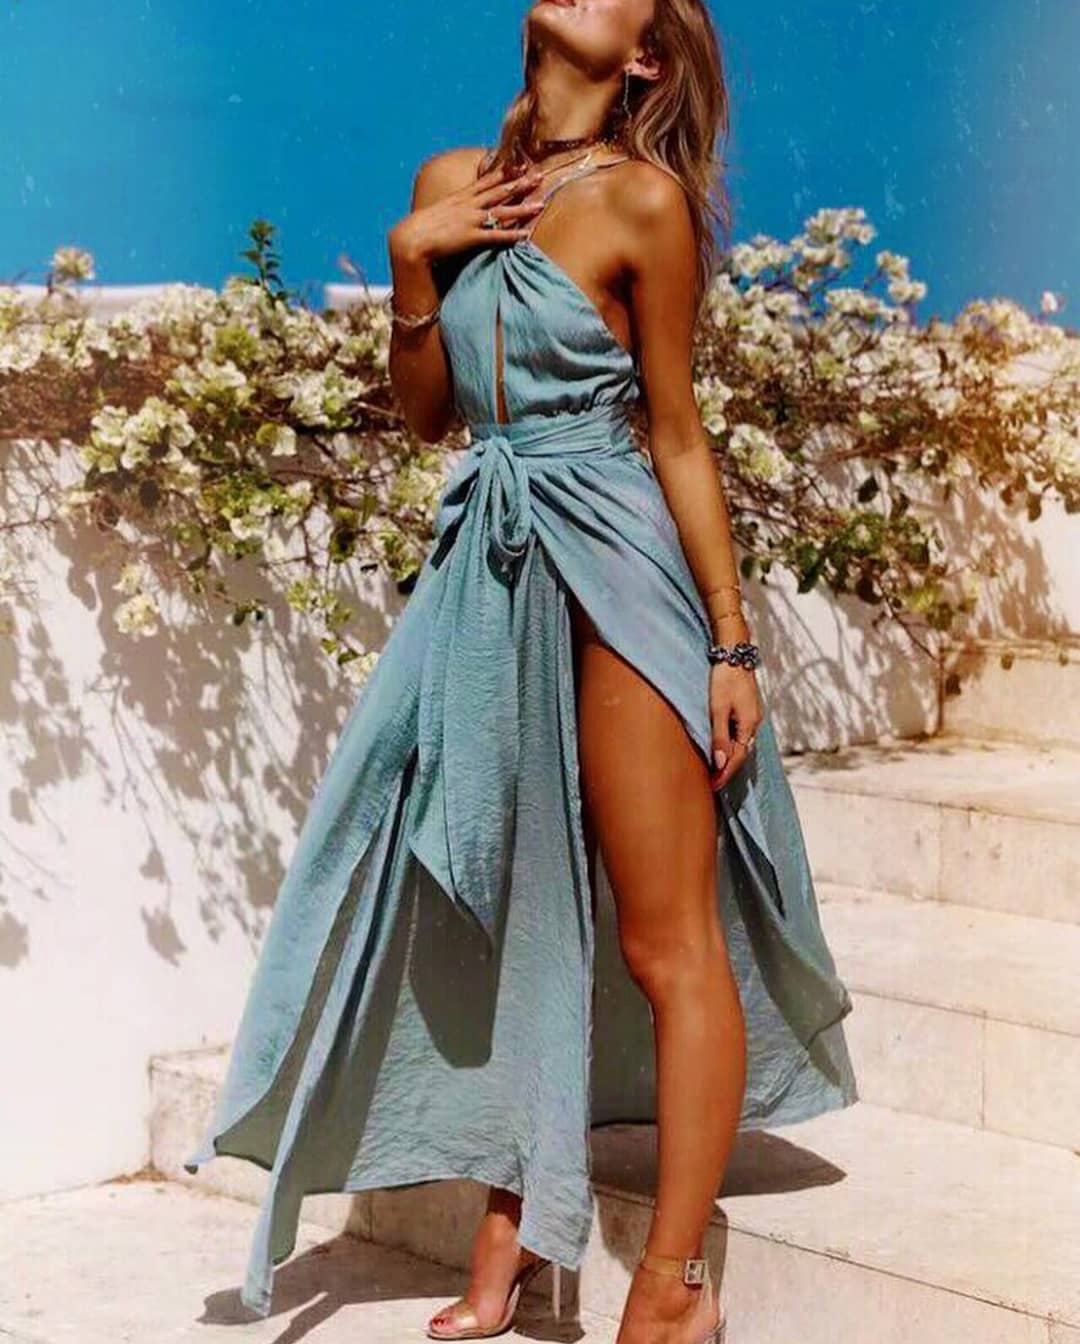 Boho Greek Style Turquoise Dress For Summer 2019